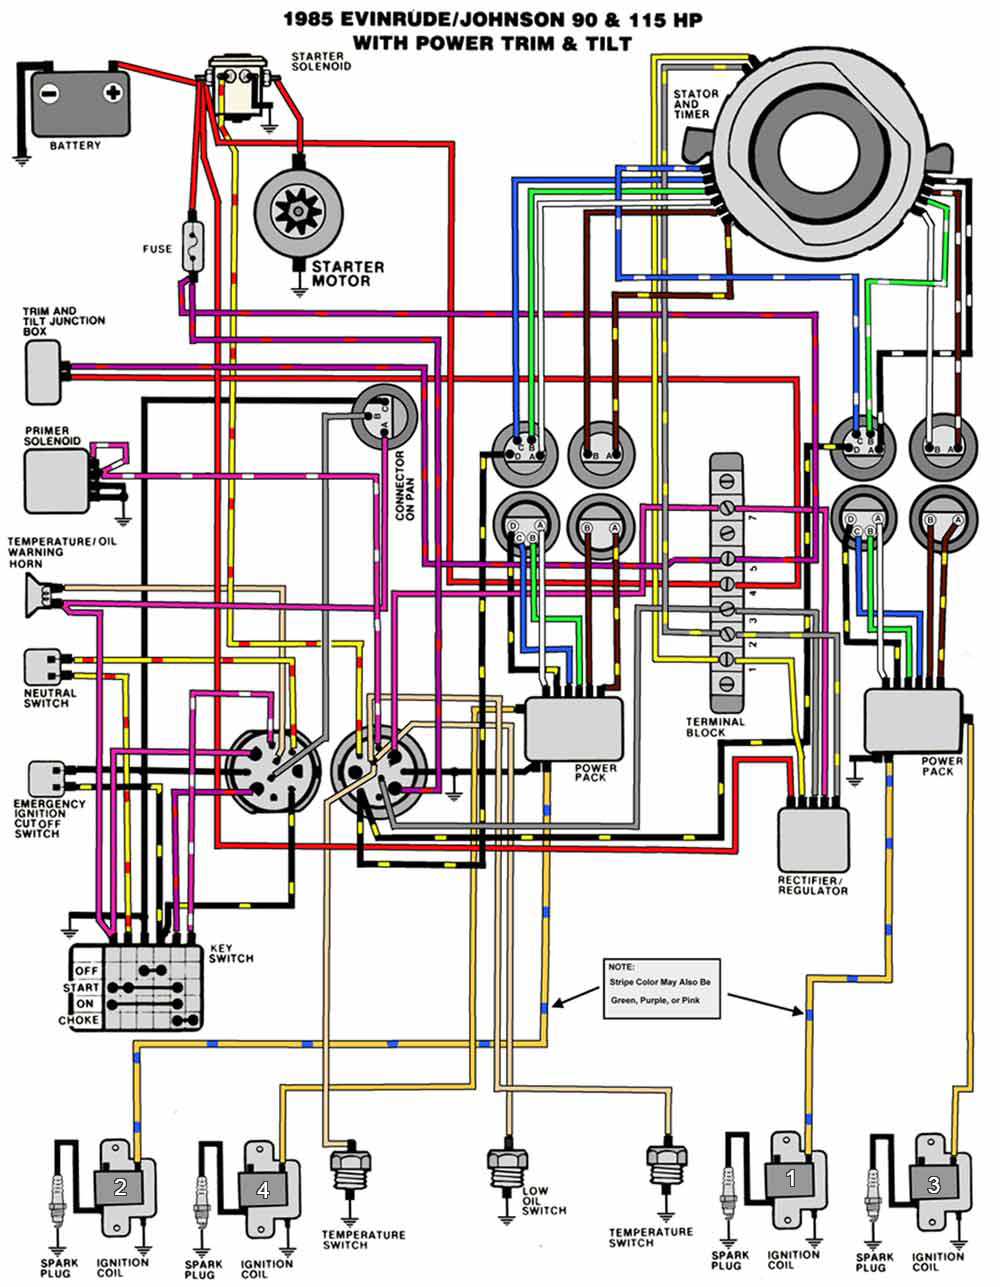 1985_90_115TnT mastertech marine evinrude johnson outboard wiring diagrams Yamaha Outboard Wiring Diagram at creativeand.co